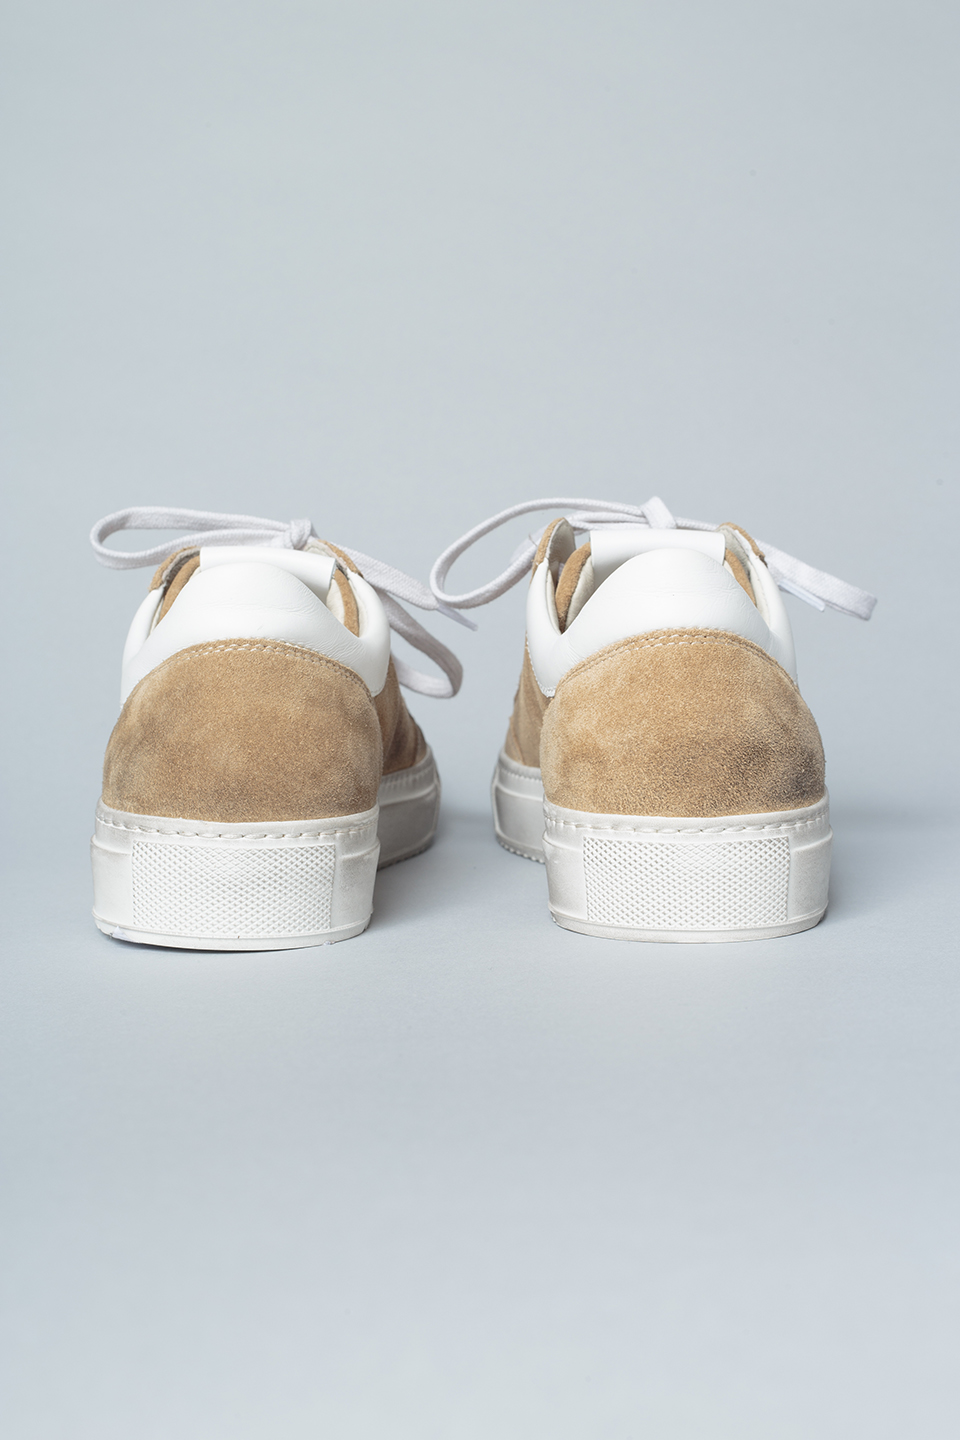 CPH112 crosta sand - alternative 3